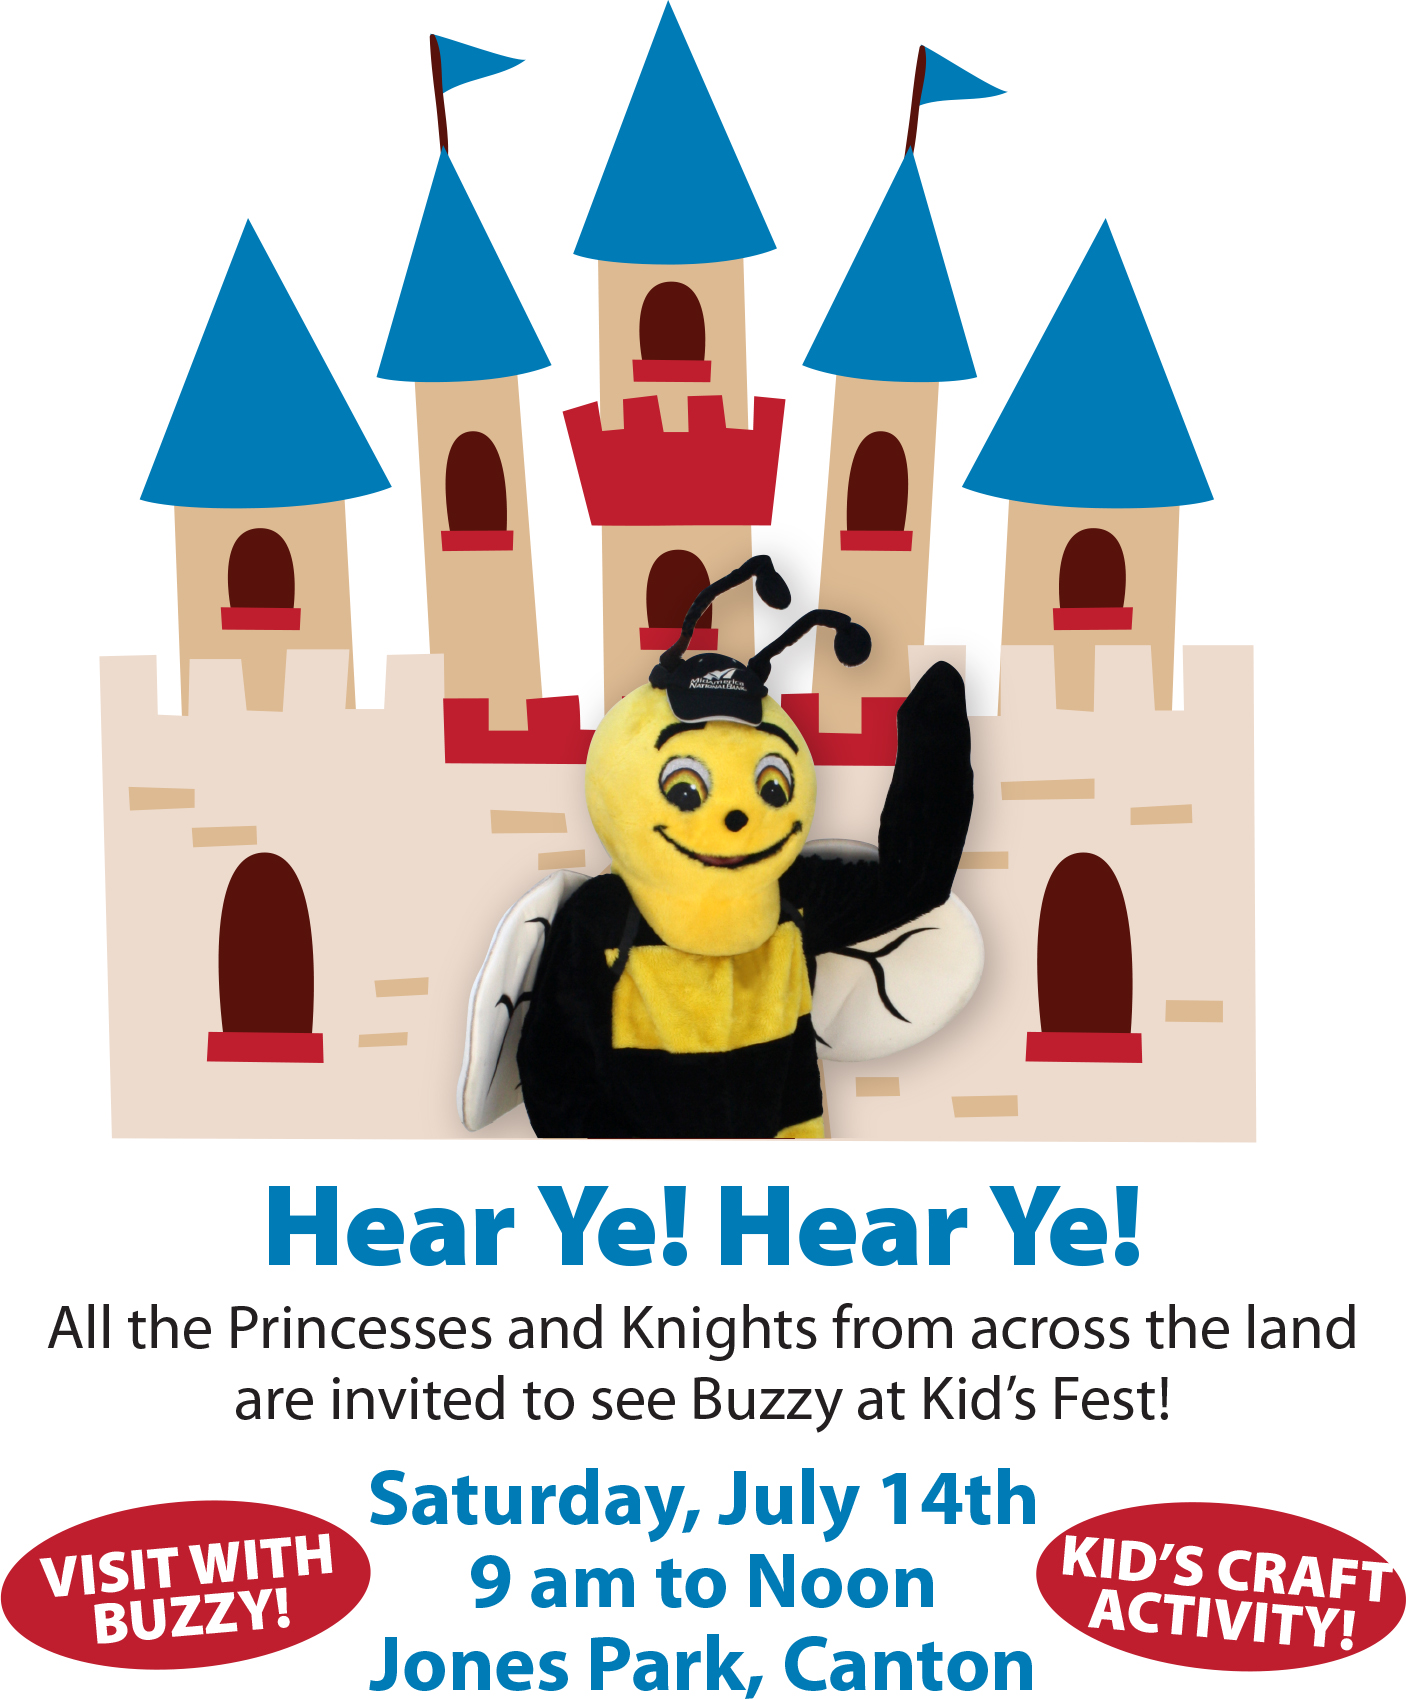 See Buzzy at Kid's Fest on July 14